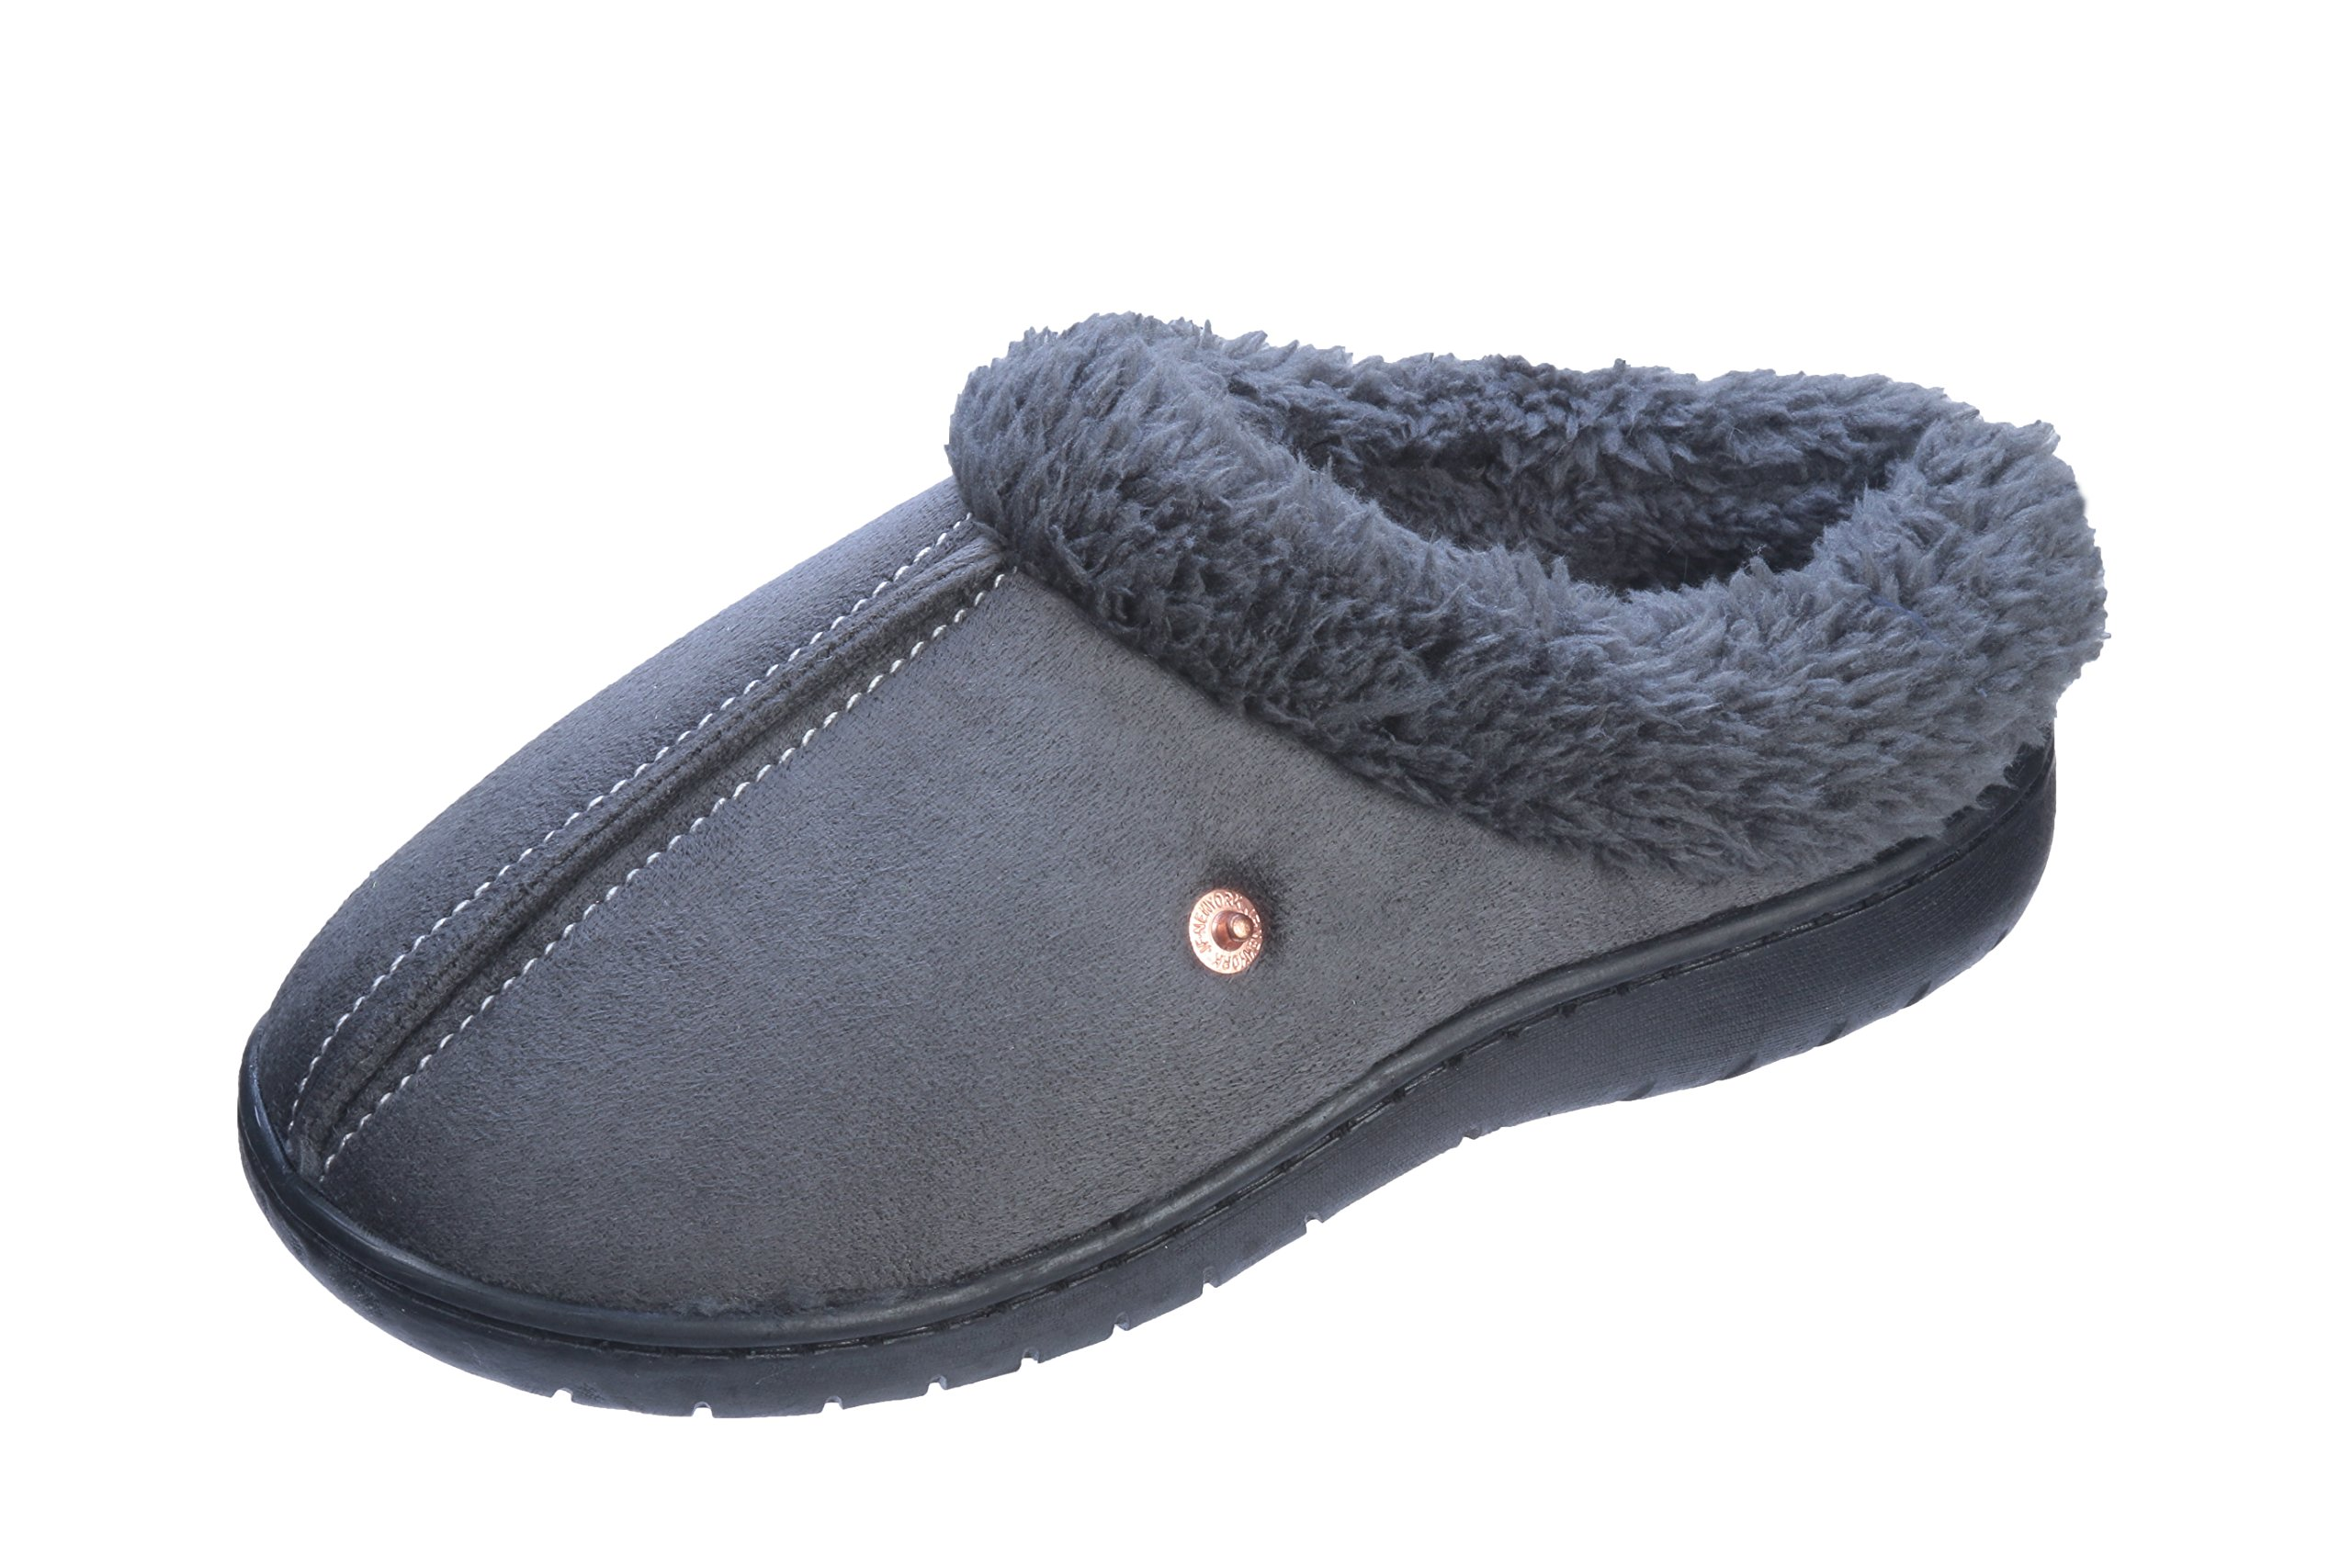 Pupeez Boys Extra Comfort and Warmth Kids Bedroom Slippers, 2-3 M US Little Kid, Gray by Pupeez (Image #1)